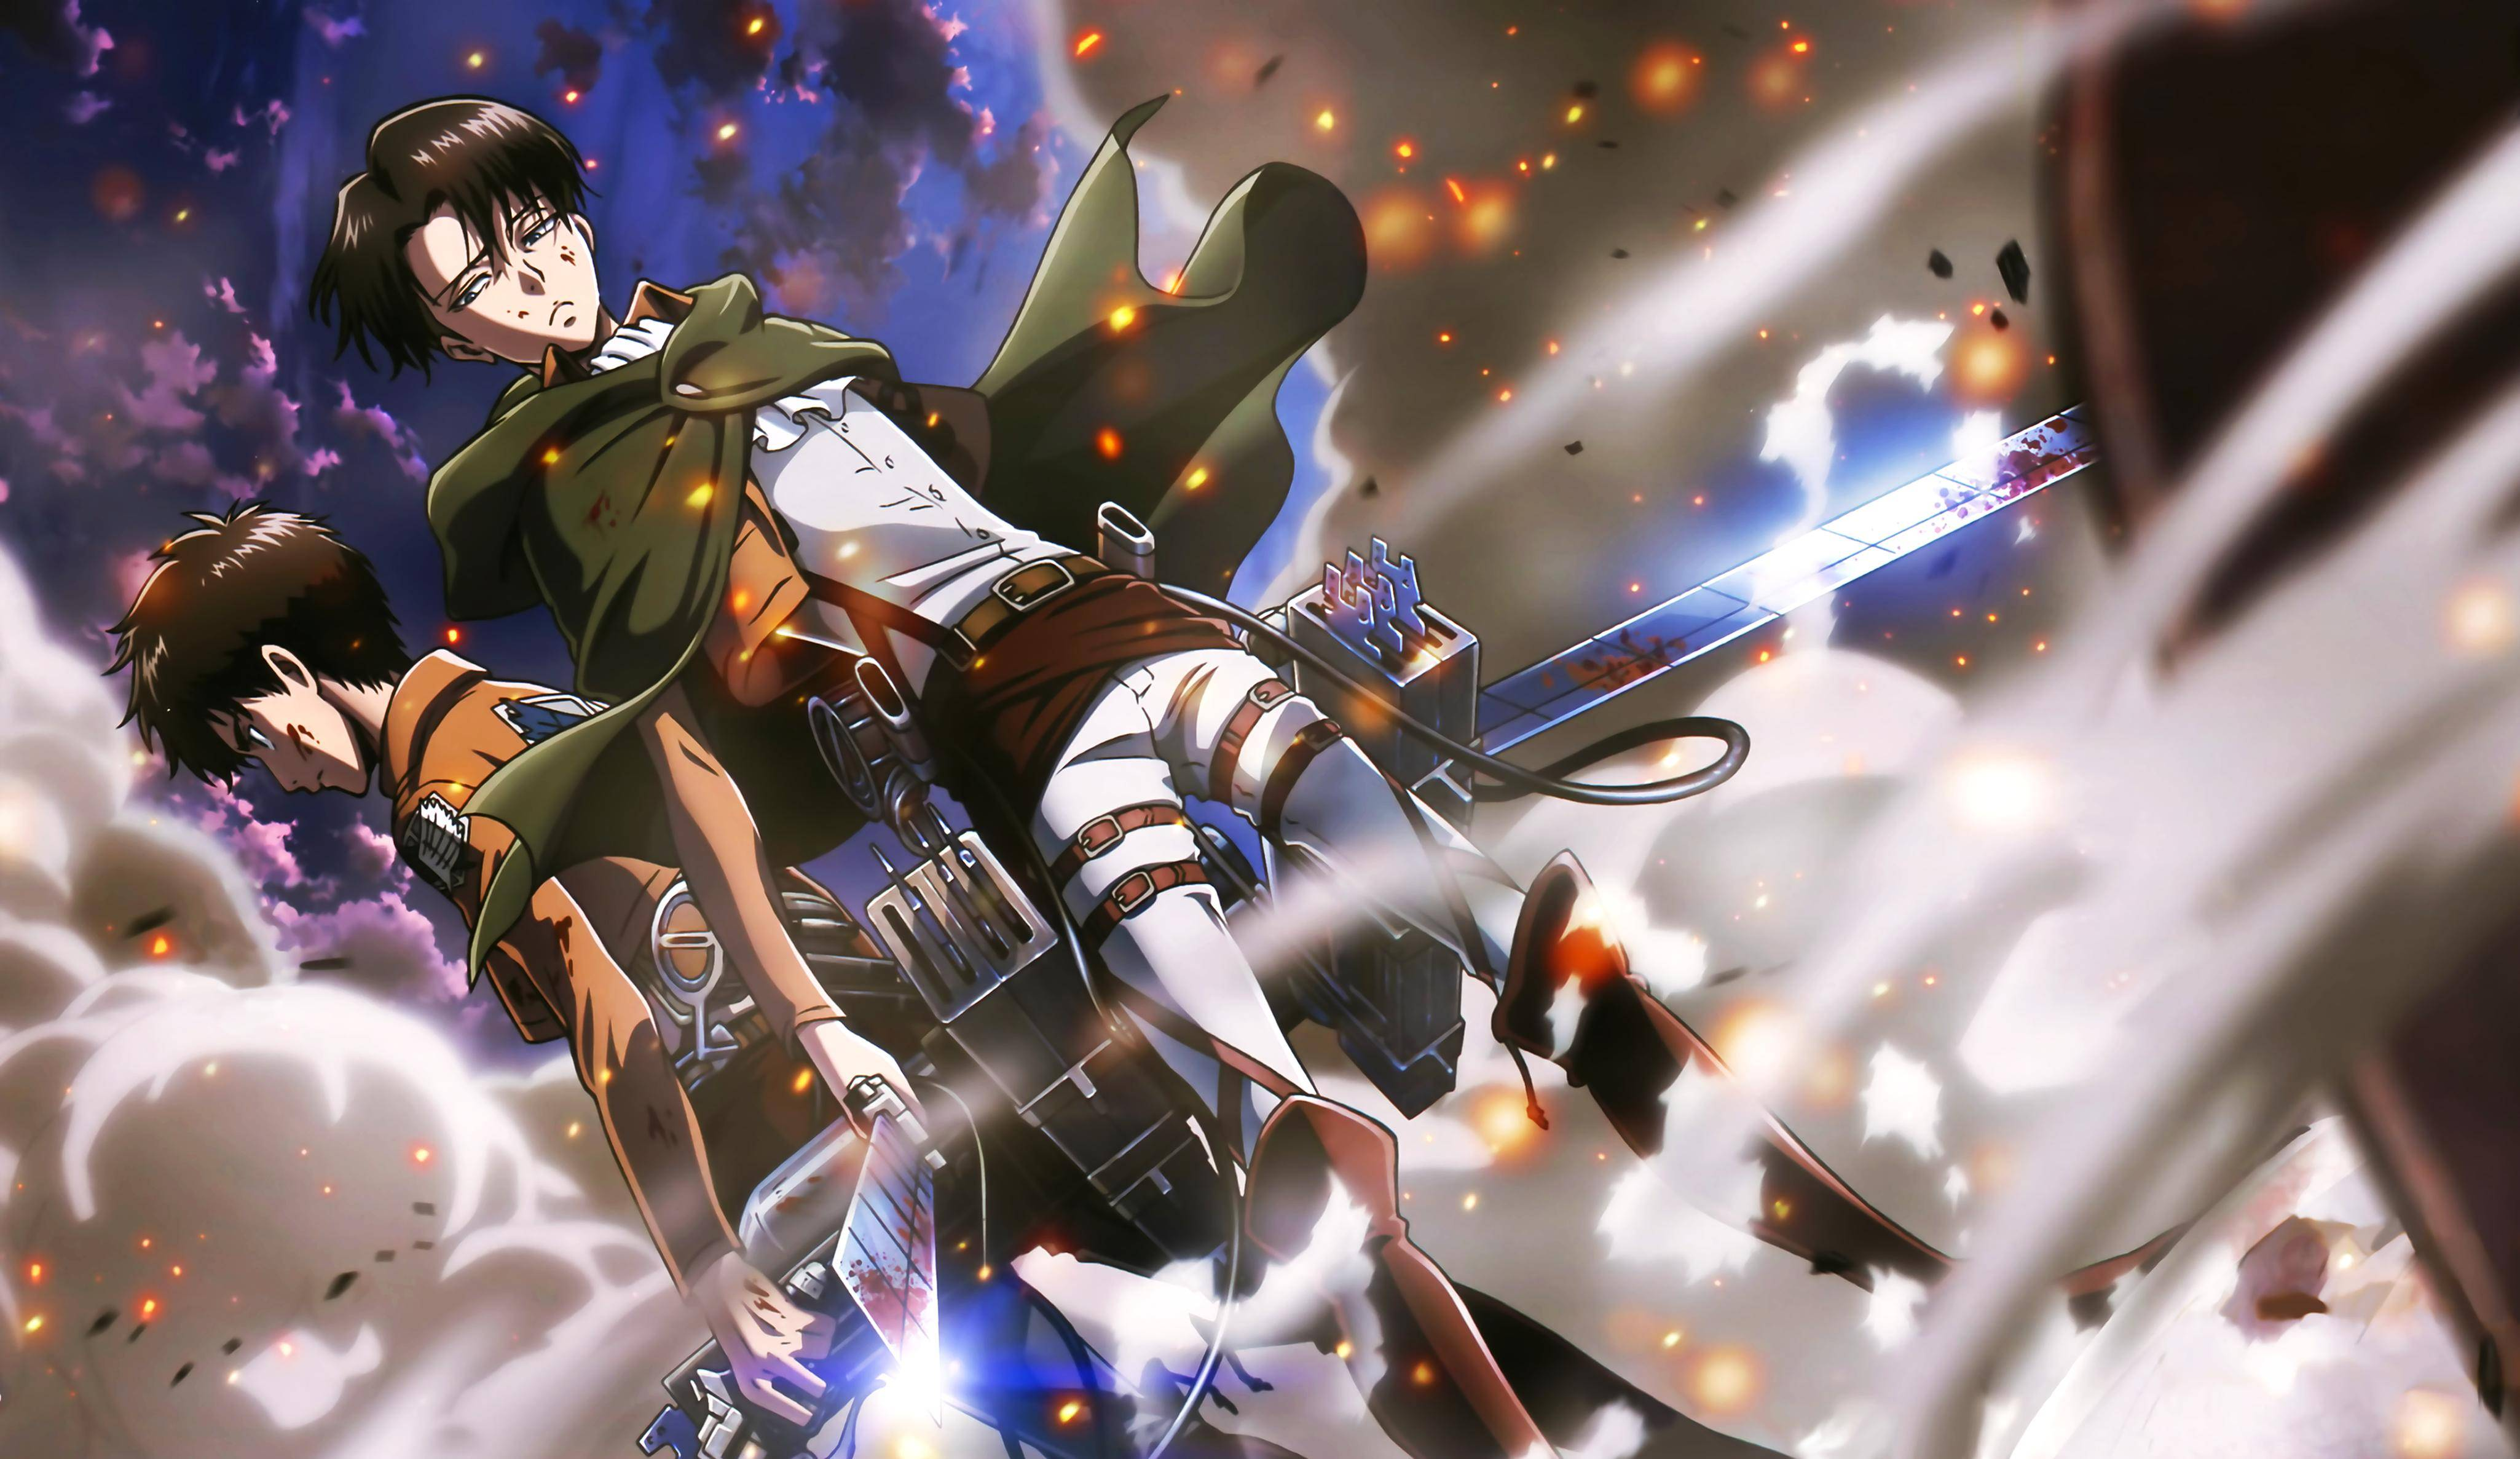 Levi Attack On Titan Wallpapers Top Free Levi Attack On